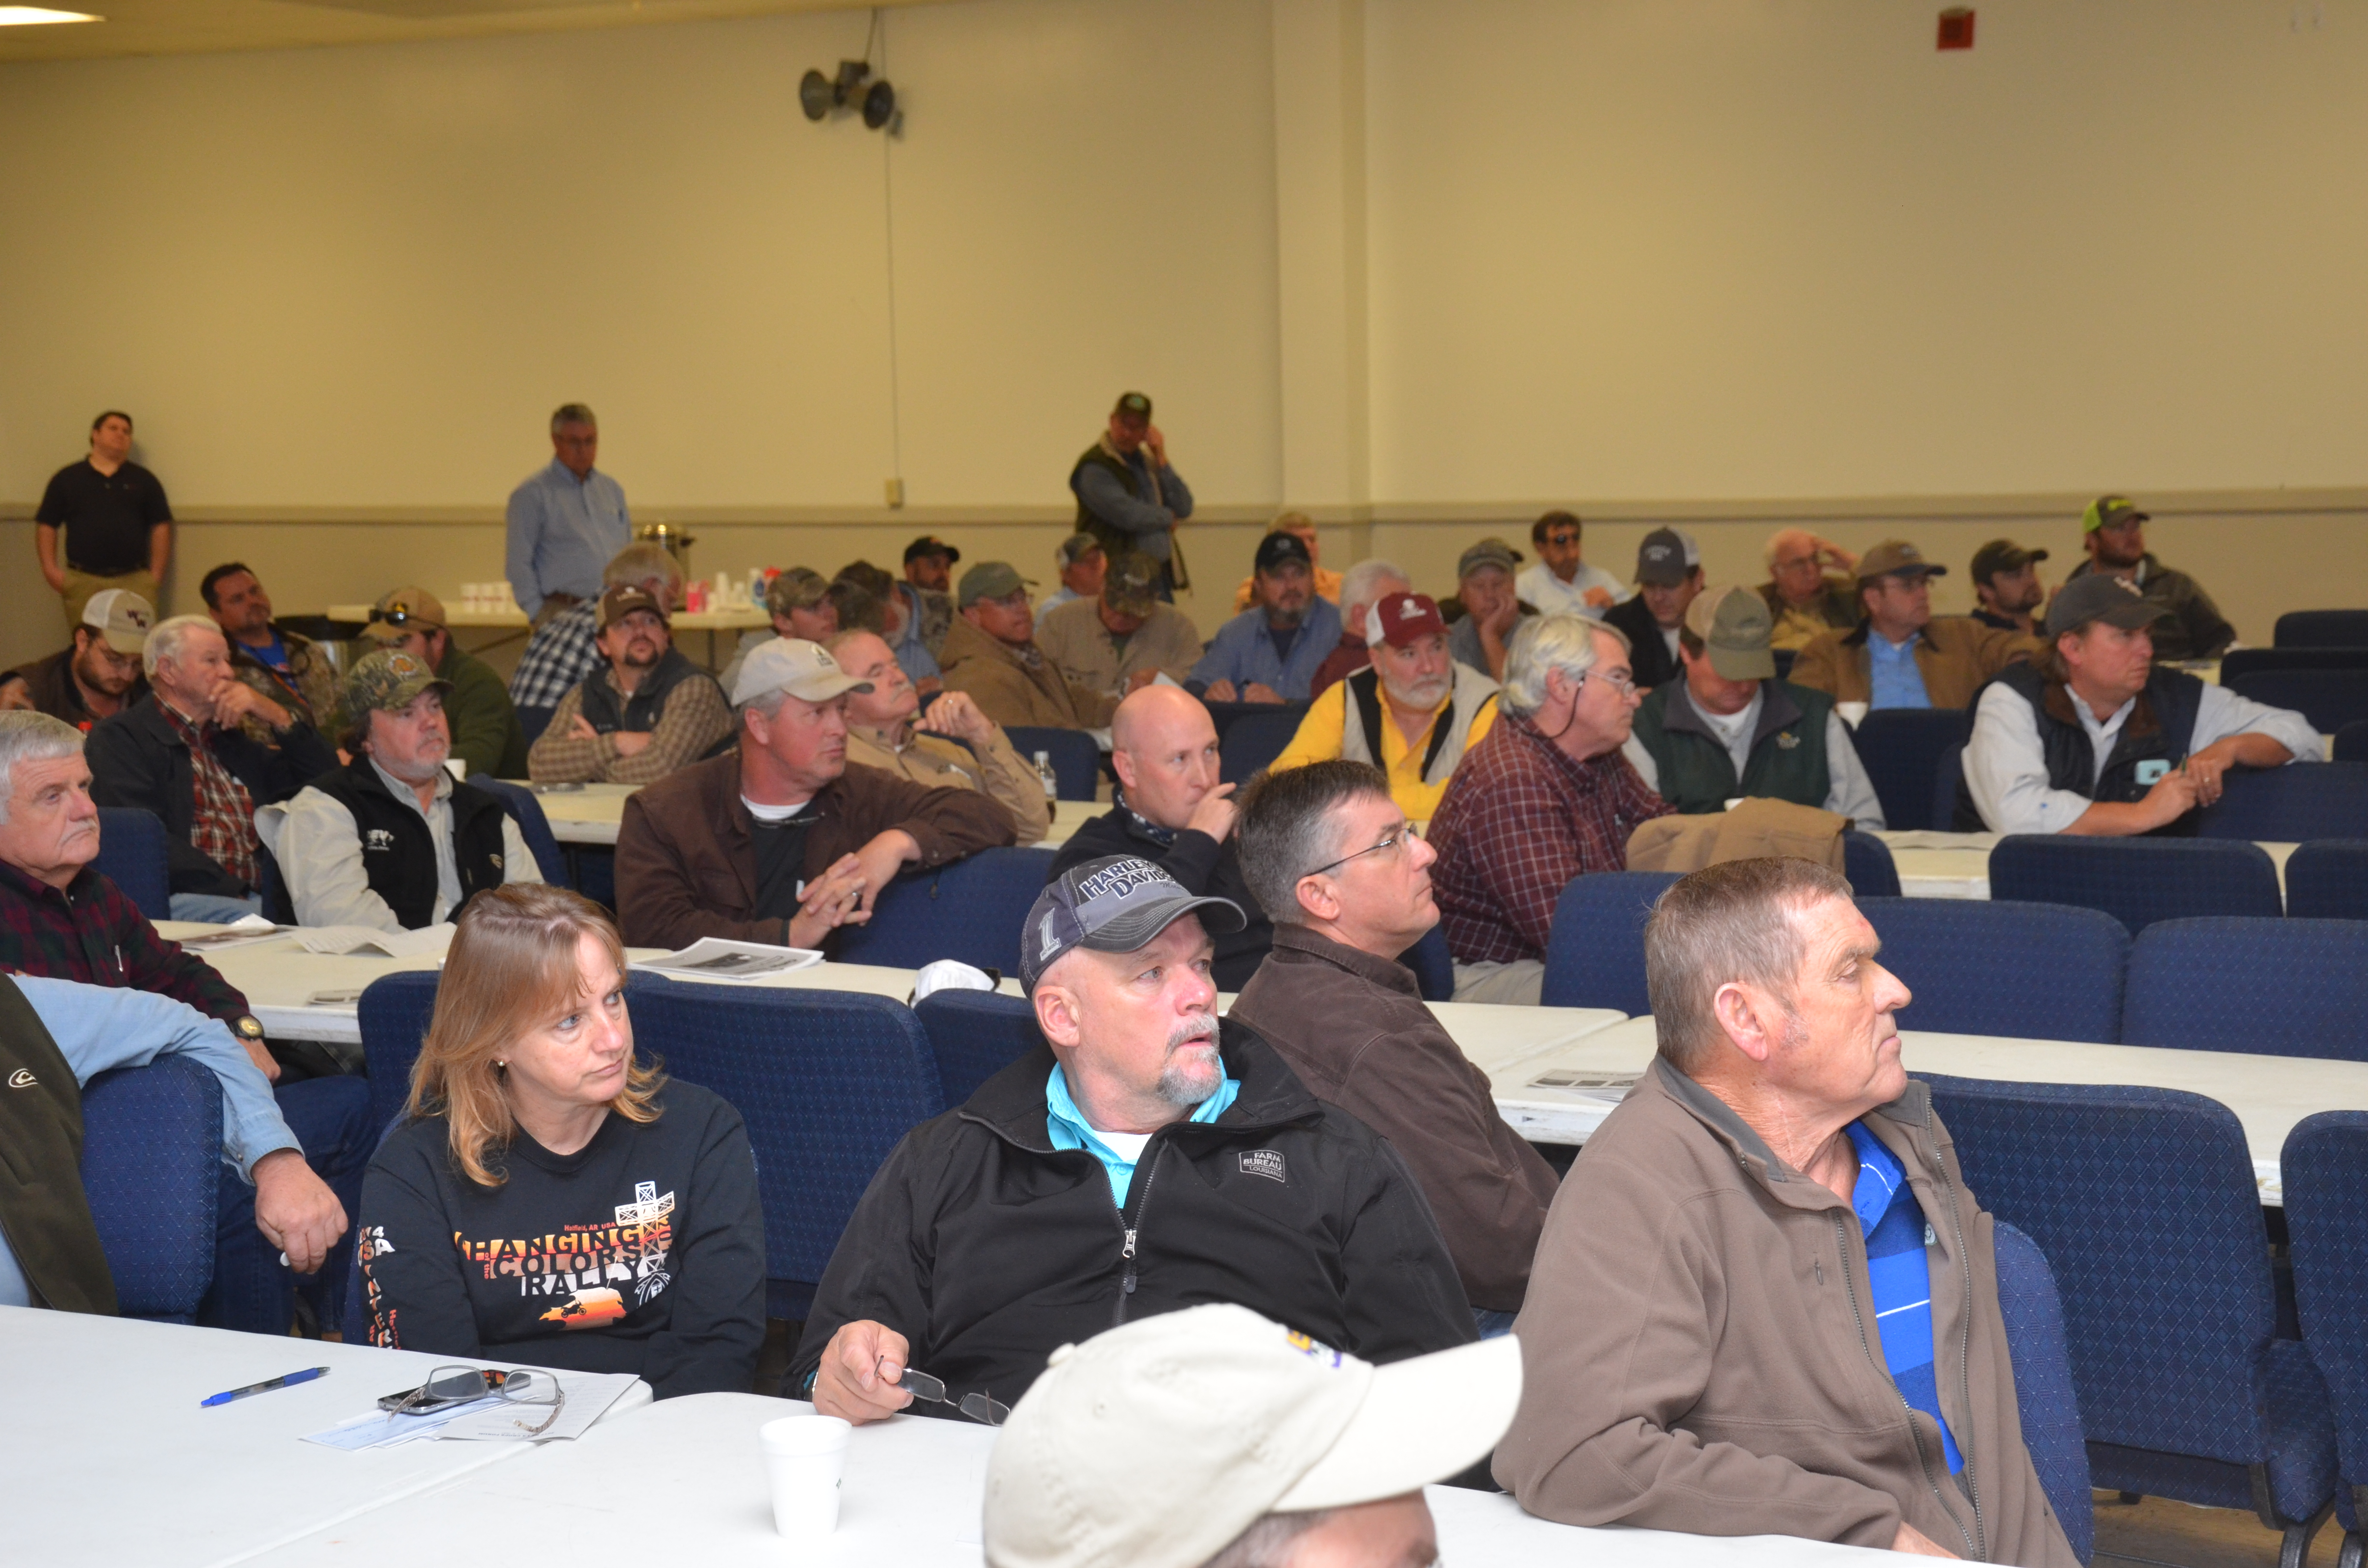 Farmers hear latest crop production information